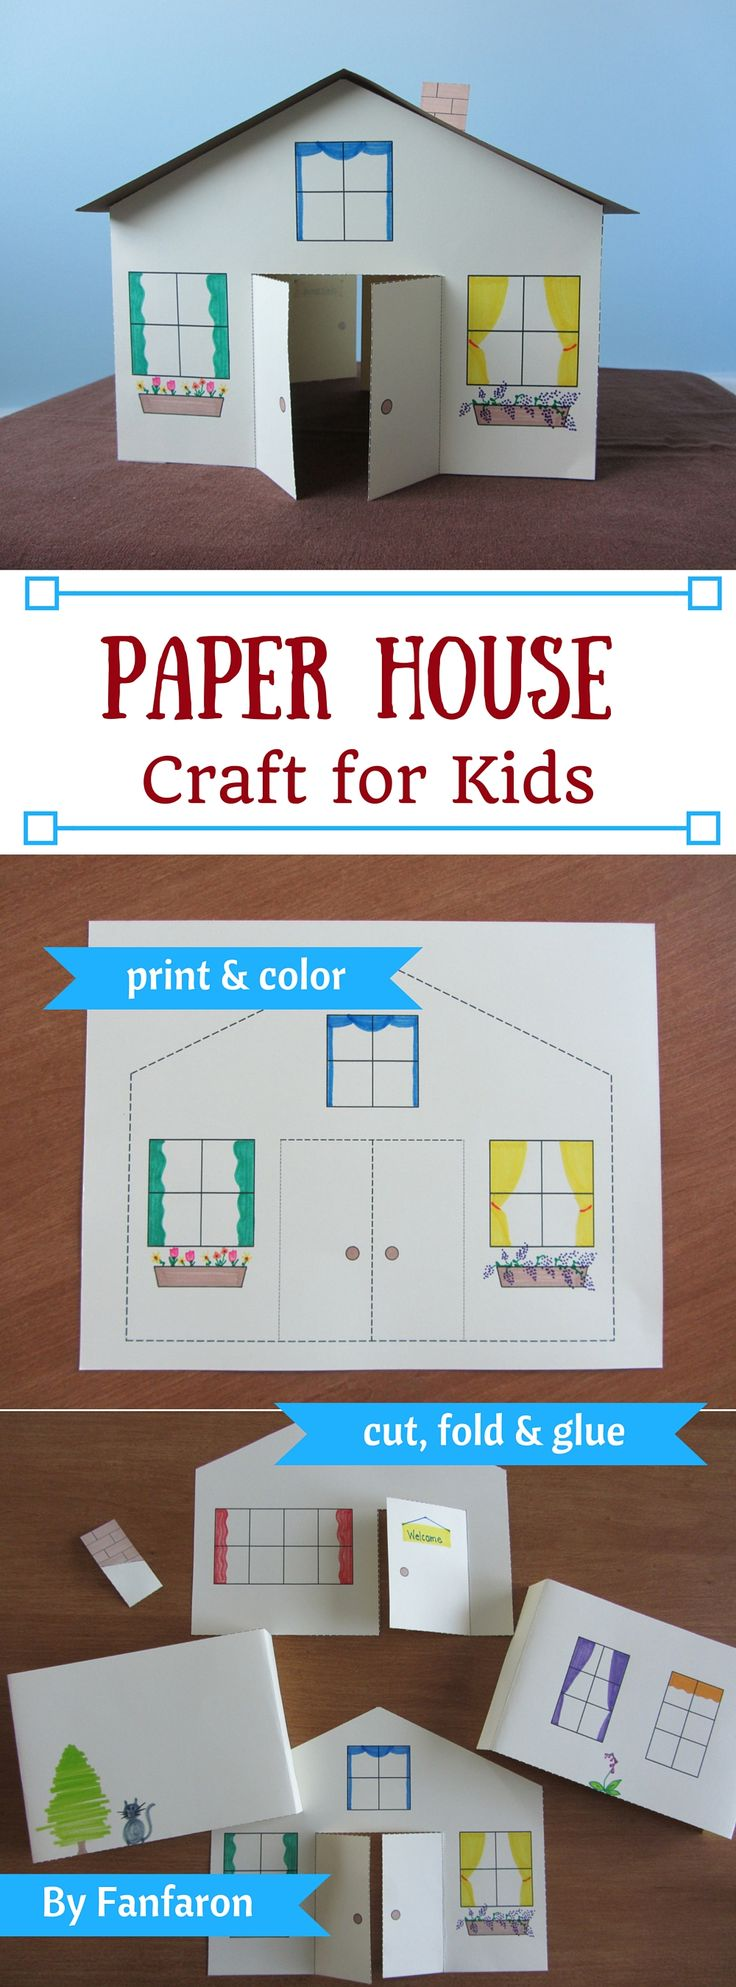 This is a easy, fun craft project for kids.  Simply purchase the template, print it from your home computer, and start crafting.  Watch the video instructions on YouTube to see how it's done!   www.youtube.com/c/fanfaronbylaura